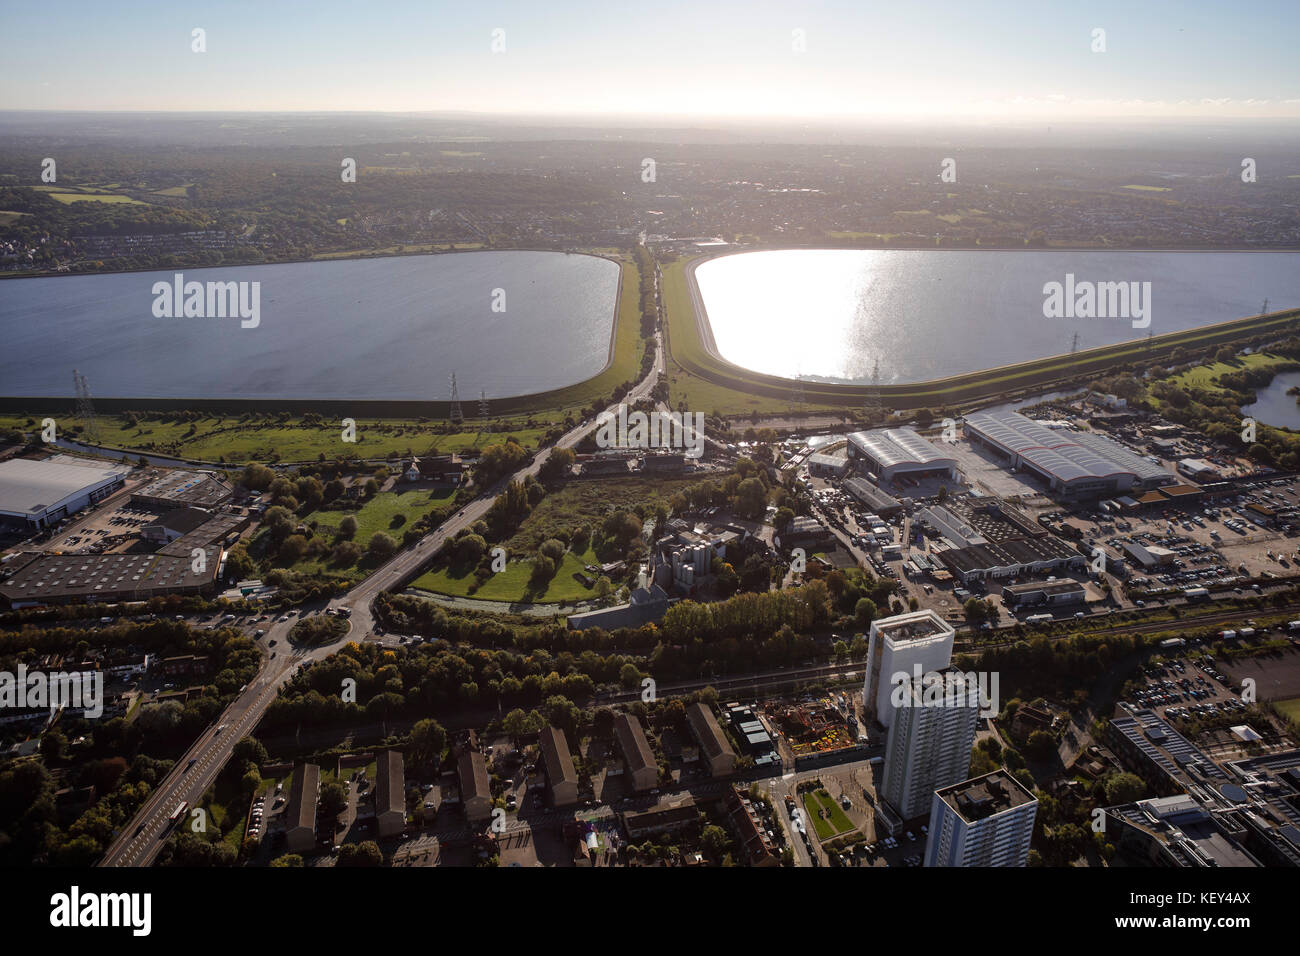 An aerial view of the King George Reservoir in the Lea Valley, East London - Stock Image